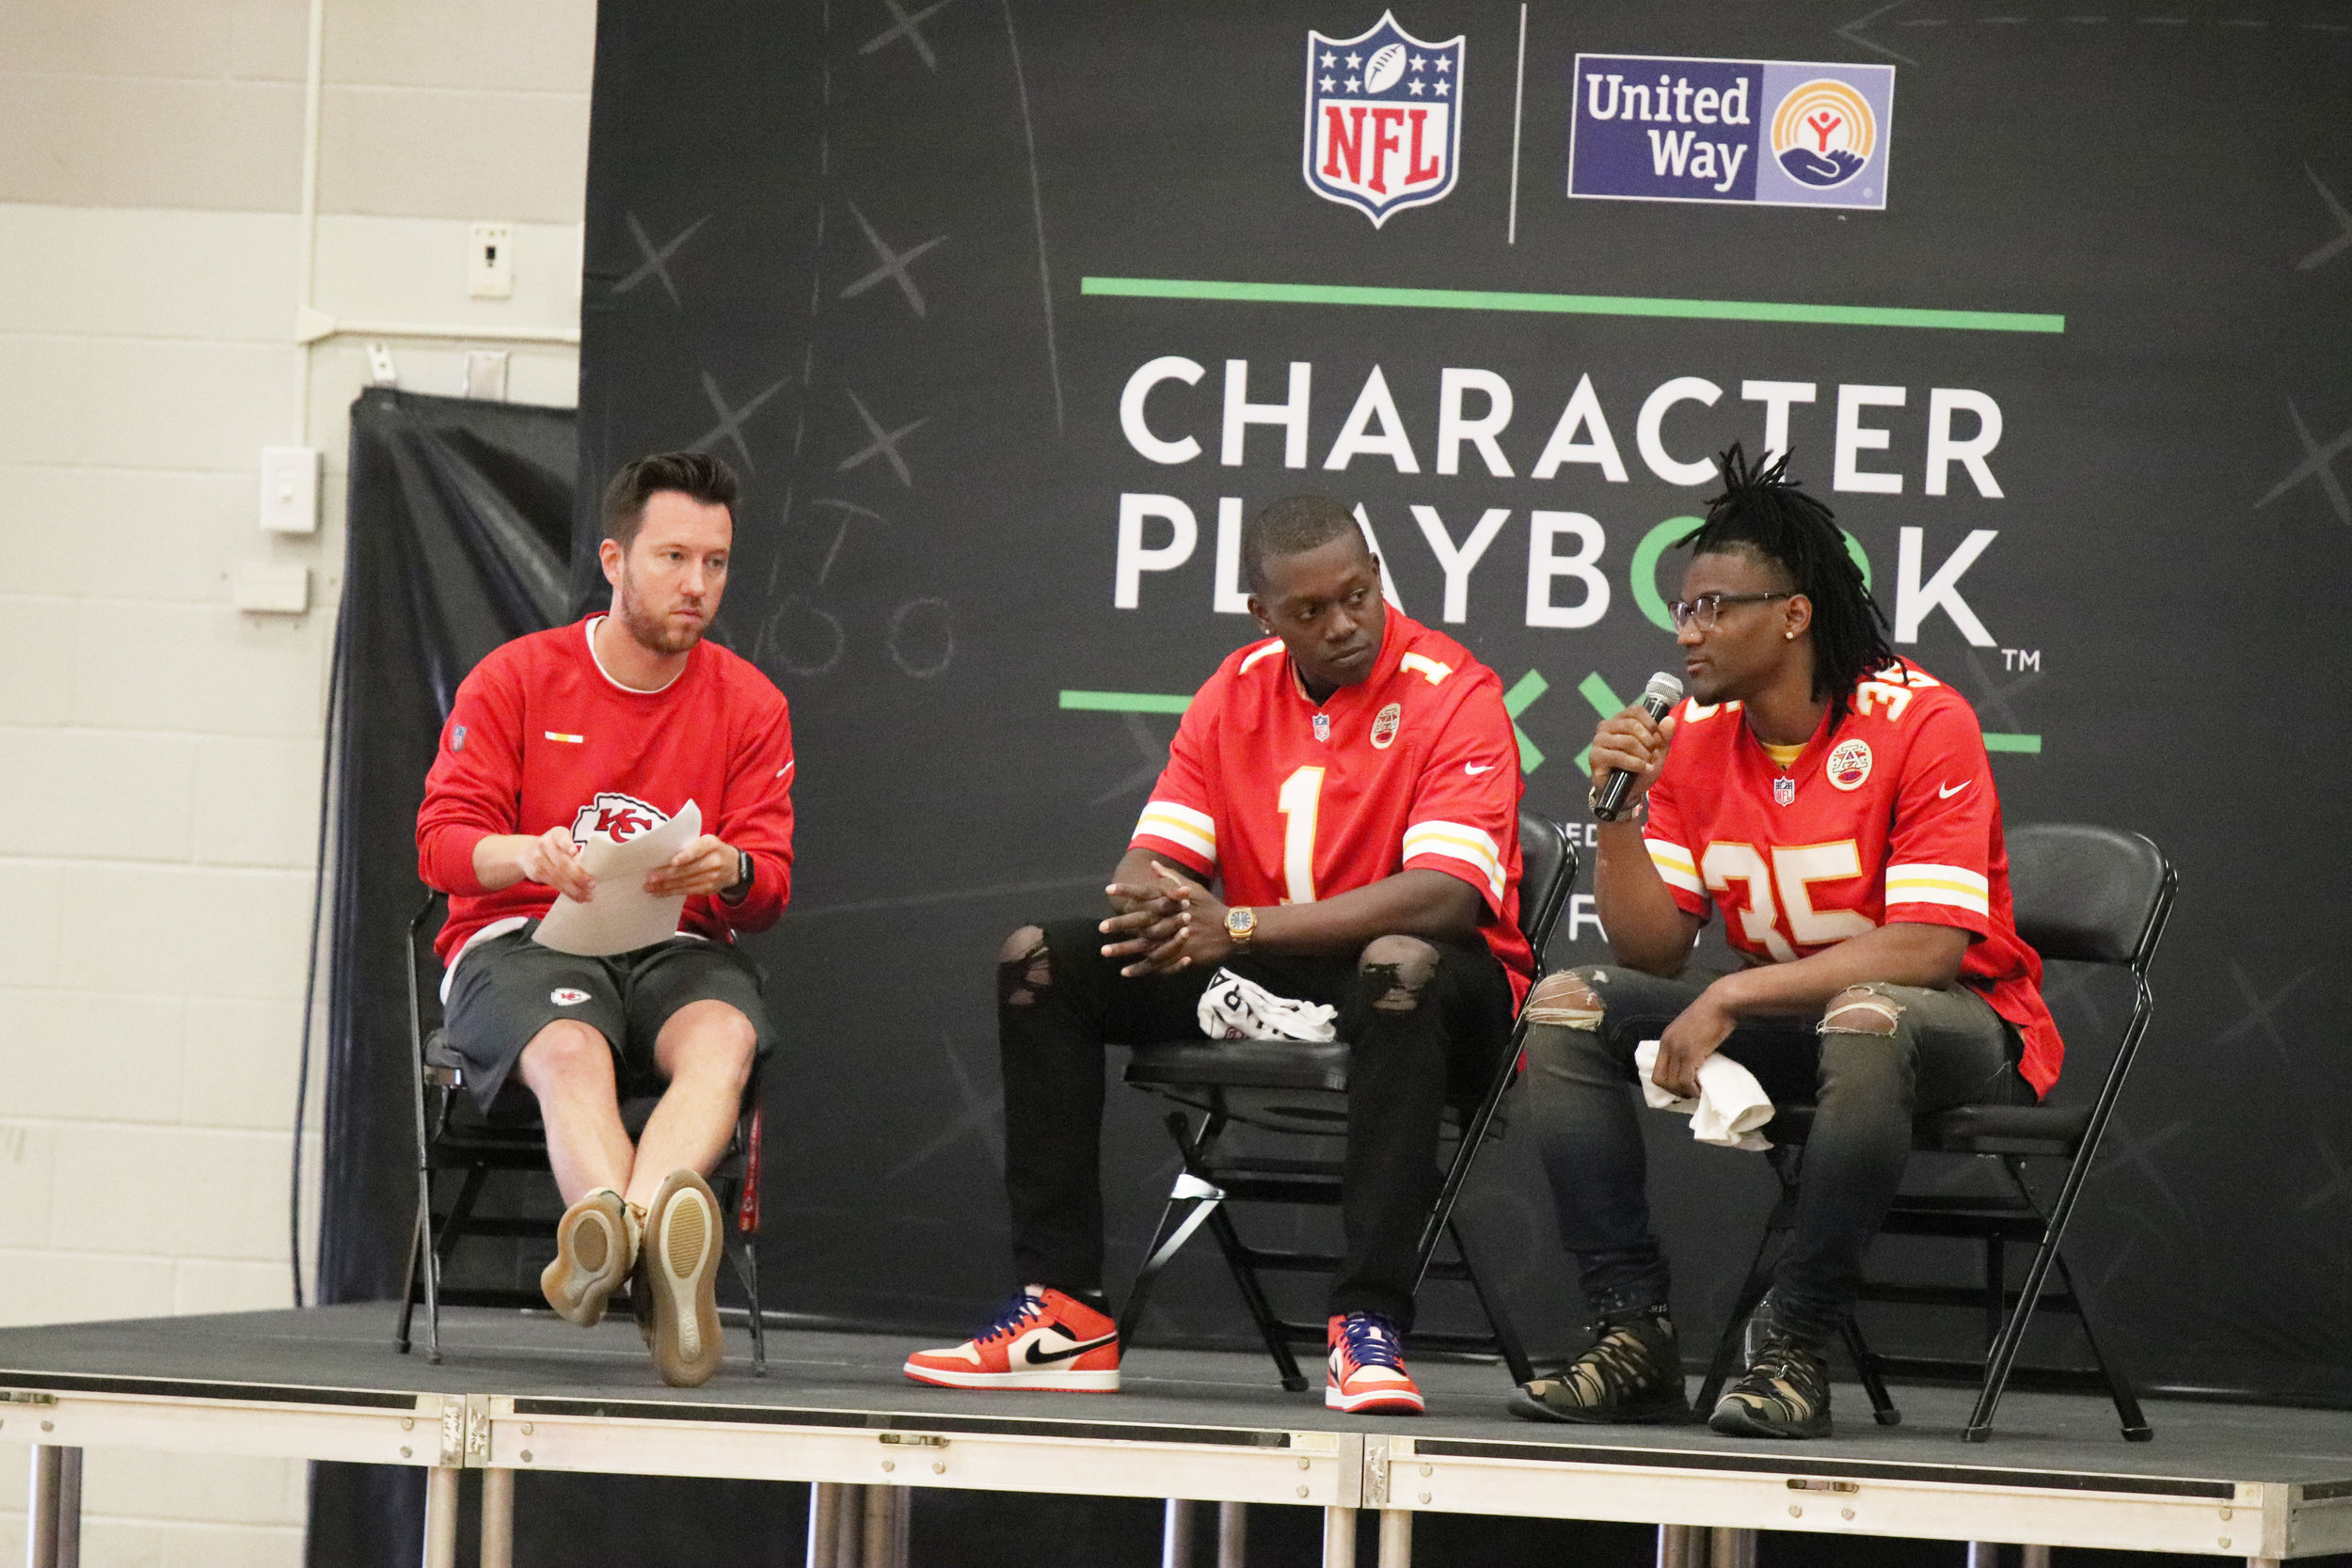 CODY THORN/Citizen photo Kansas City cornerback Charvarius Ward, right, answers a question during an assembly at Platte County Middle School on Friday, May 3. Next to him is teammate, Byron Pringle (center) and Kansas City Chiefs employee Tyler Banks, who served as the emcee.